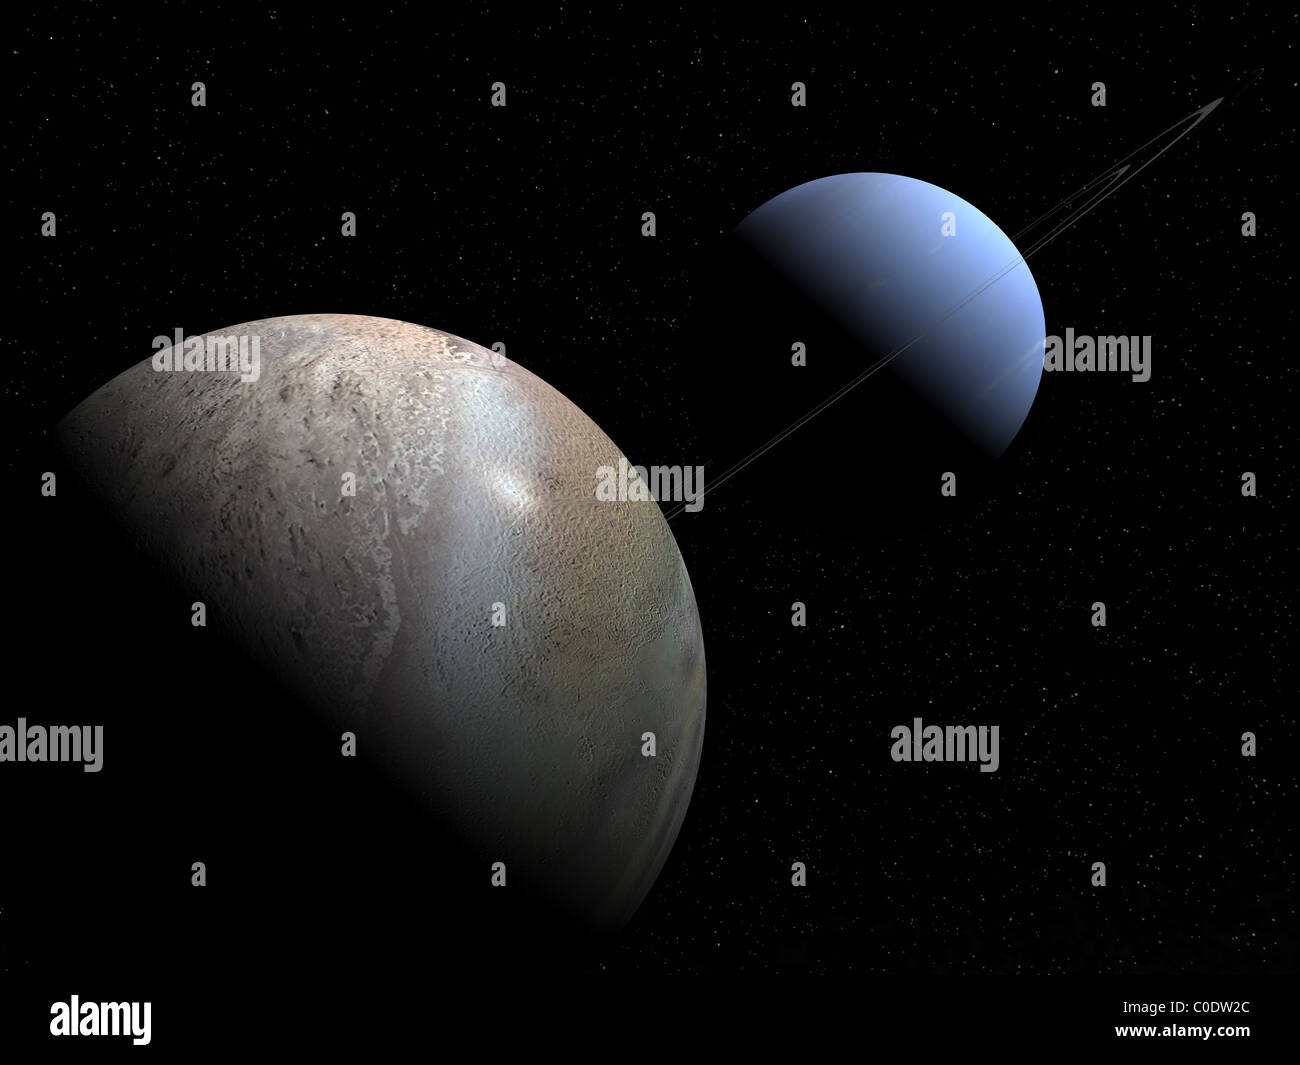 Illustration Of The Gas Giant Planet Neptune And Its